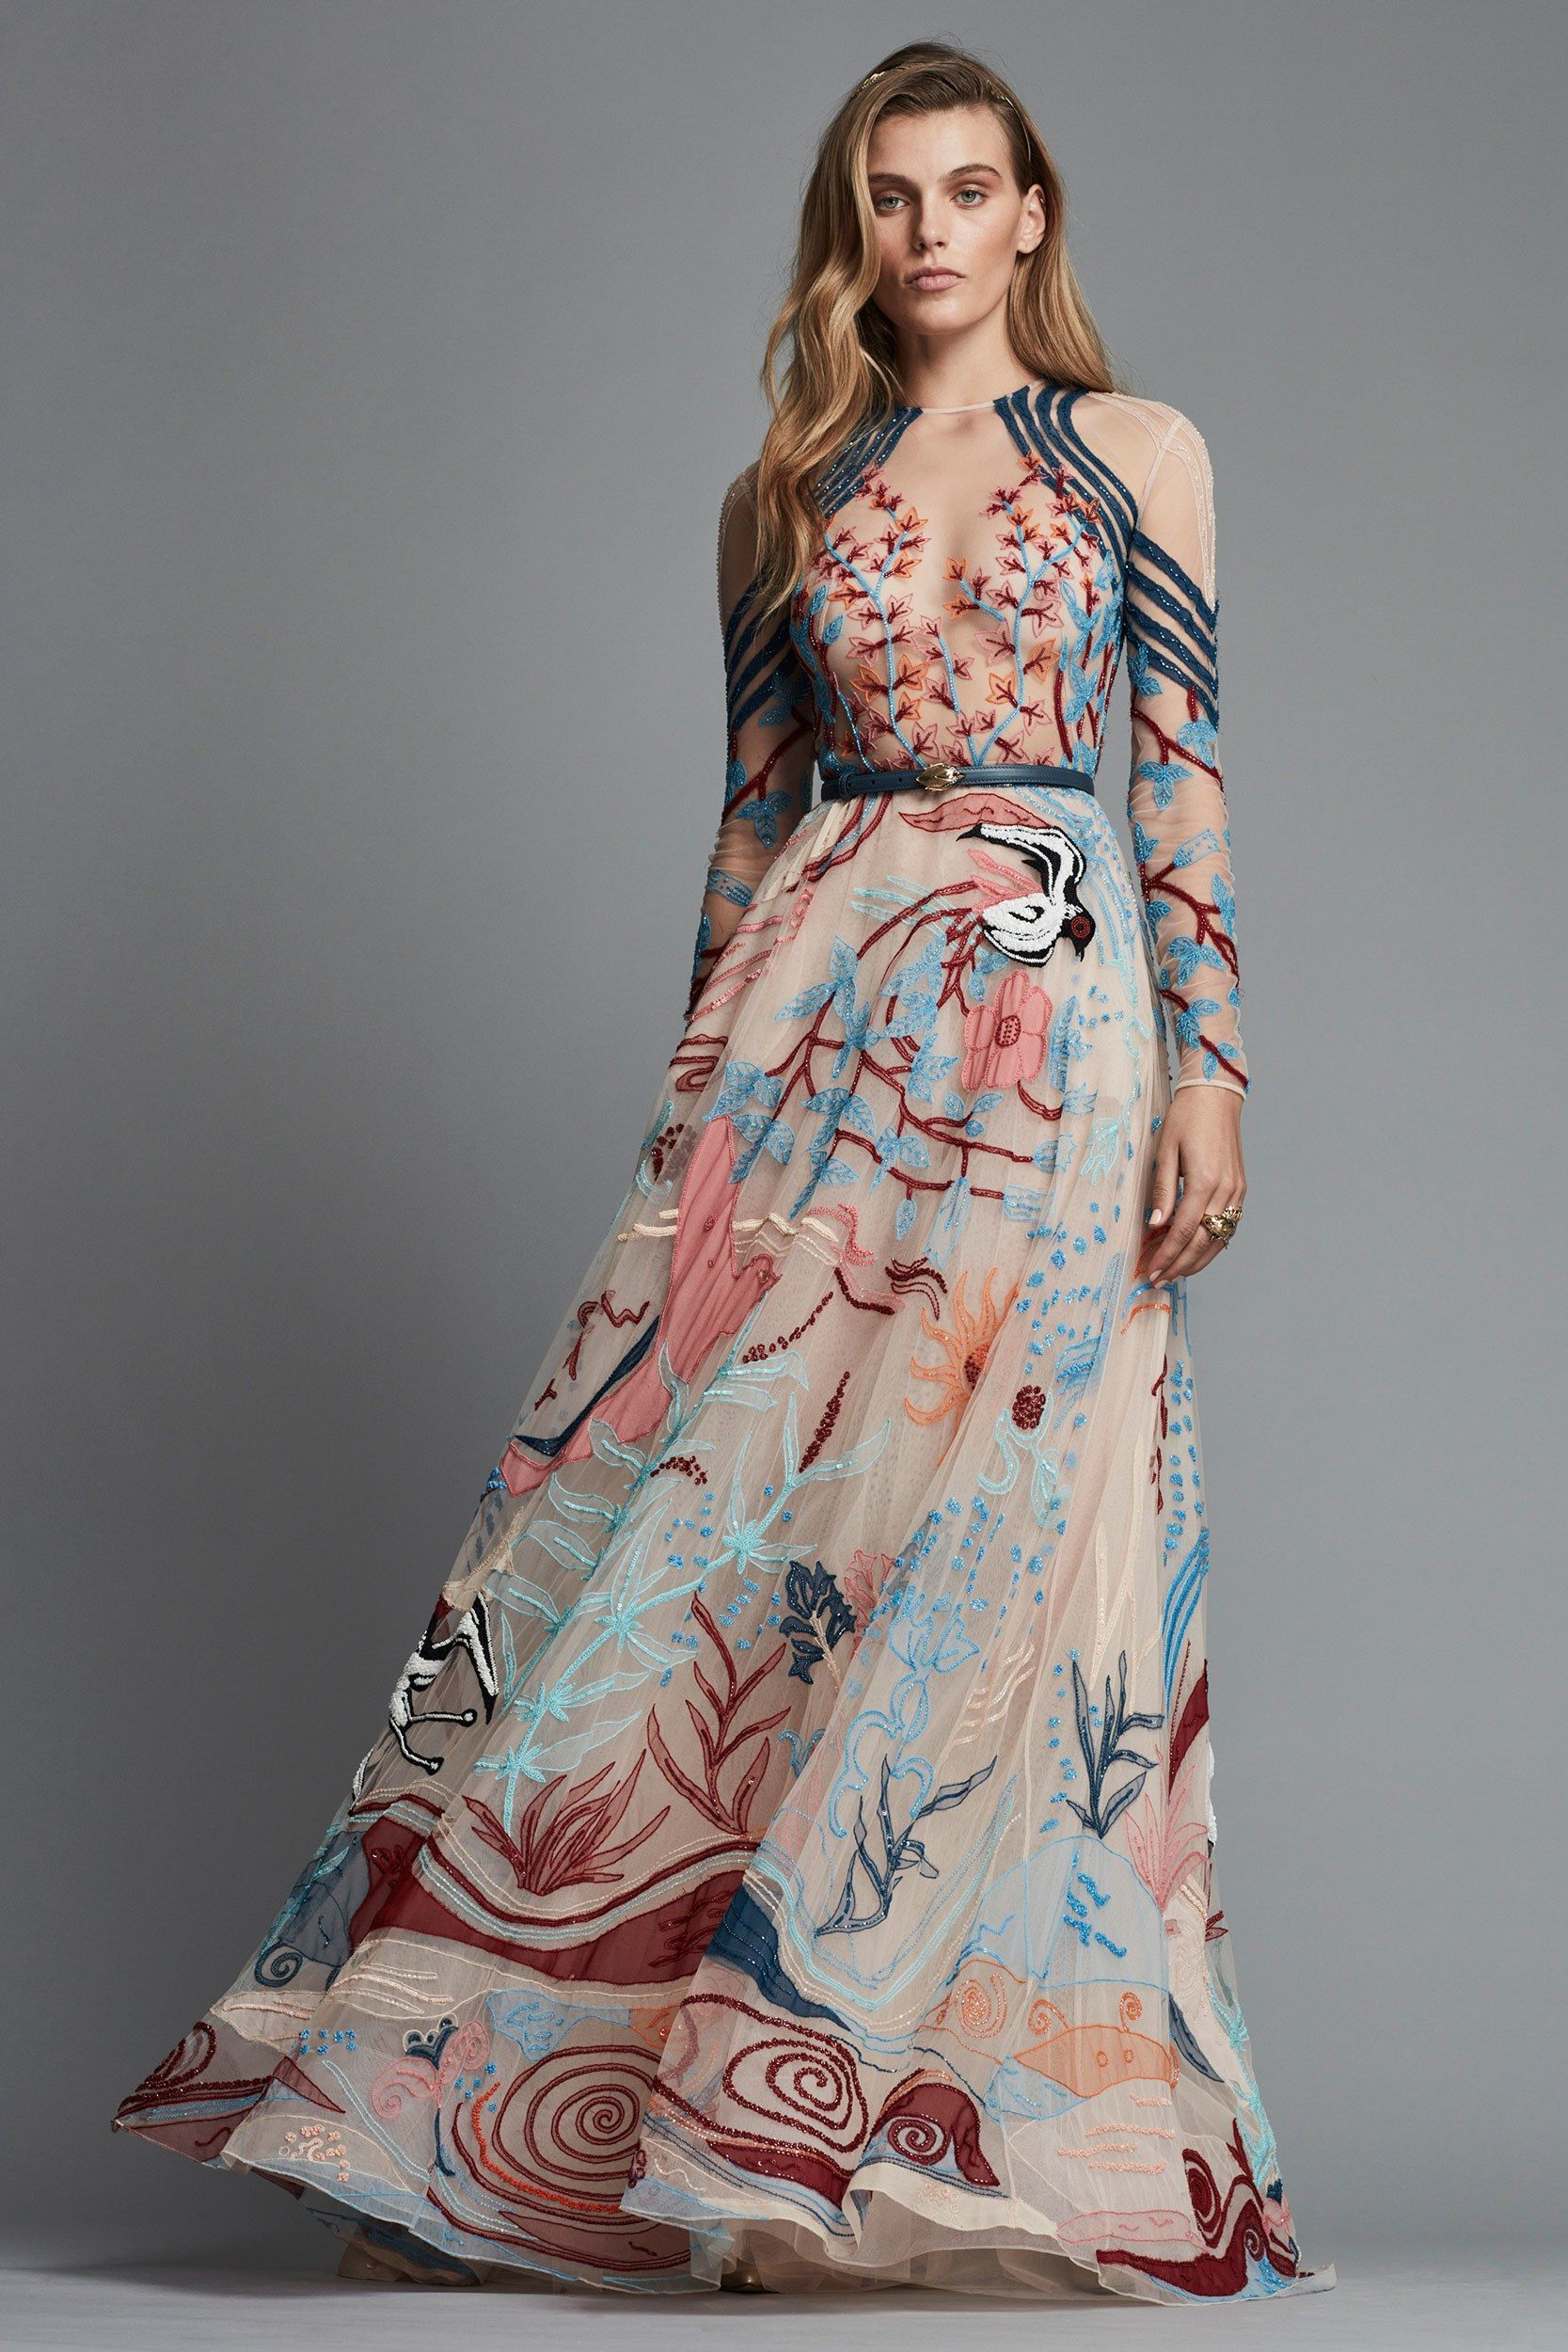 Spring fashion 2018 dresses new years